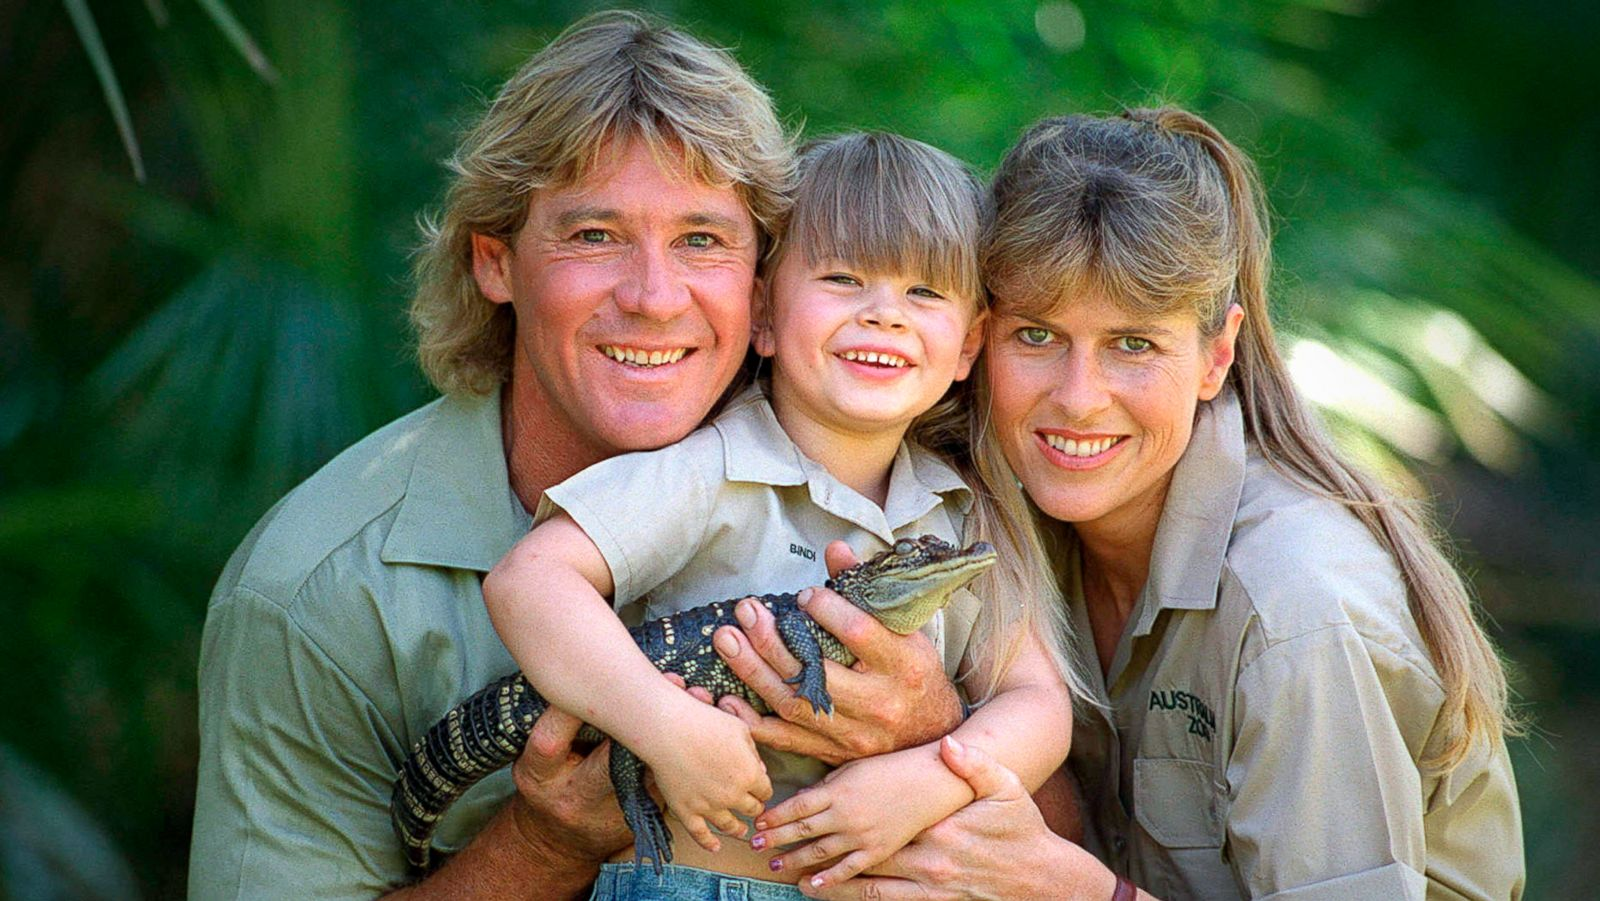 Steve Irwin S Widow Says She Hasn T Dated Since His Death Abc News